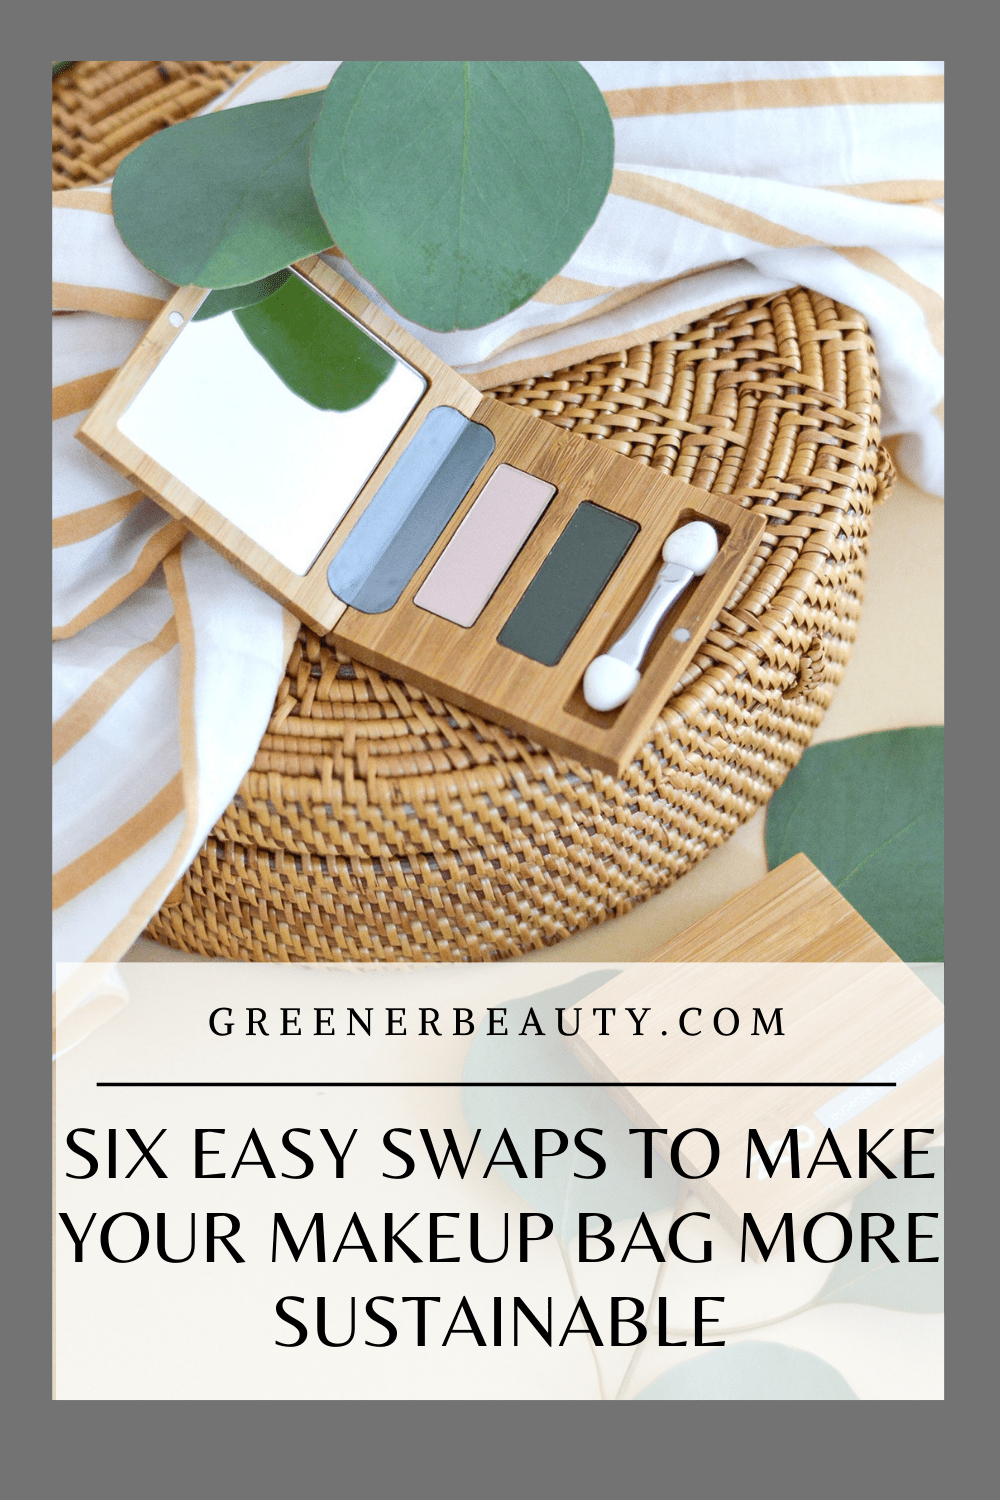 Six Easy Swaps to make Your Makeup Bag More Sustainable